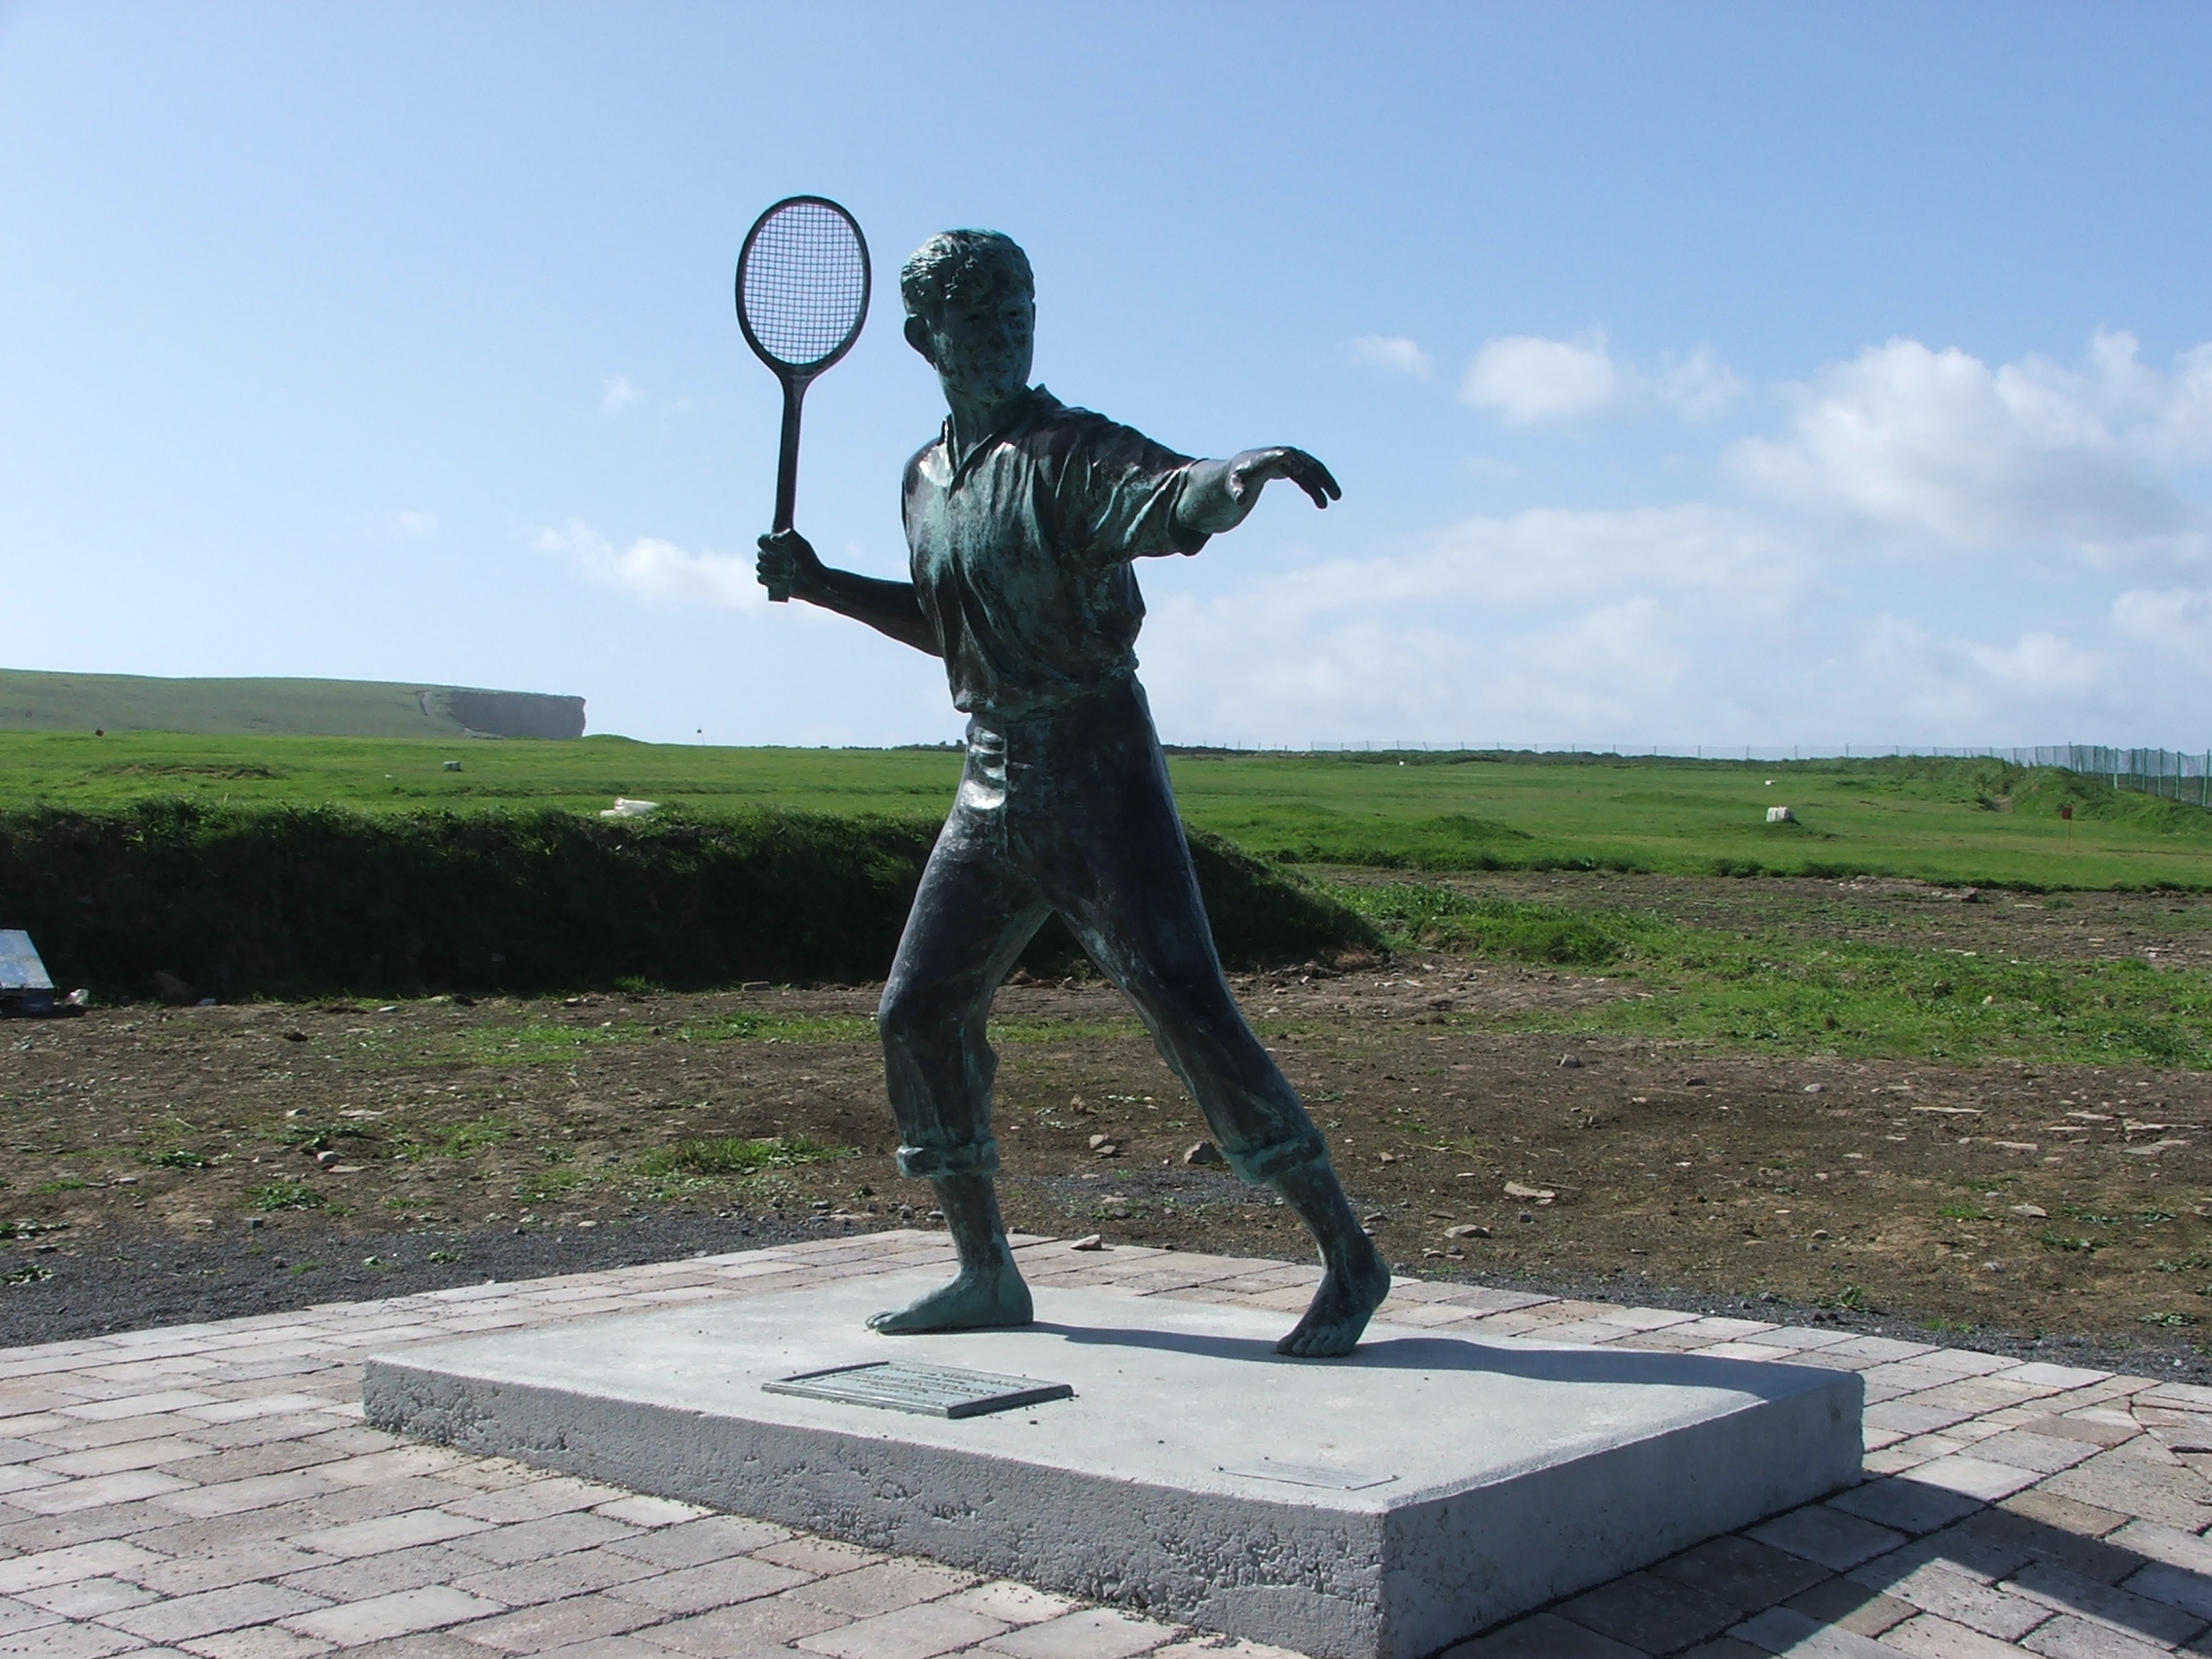 harry-potter-and-the-sorcerer-s-stone-richard-harris-statue-kilkee-2007